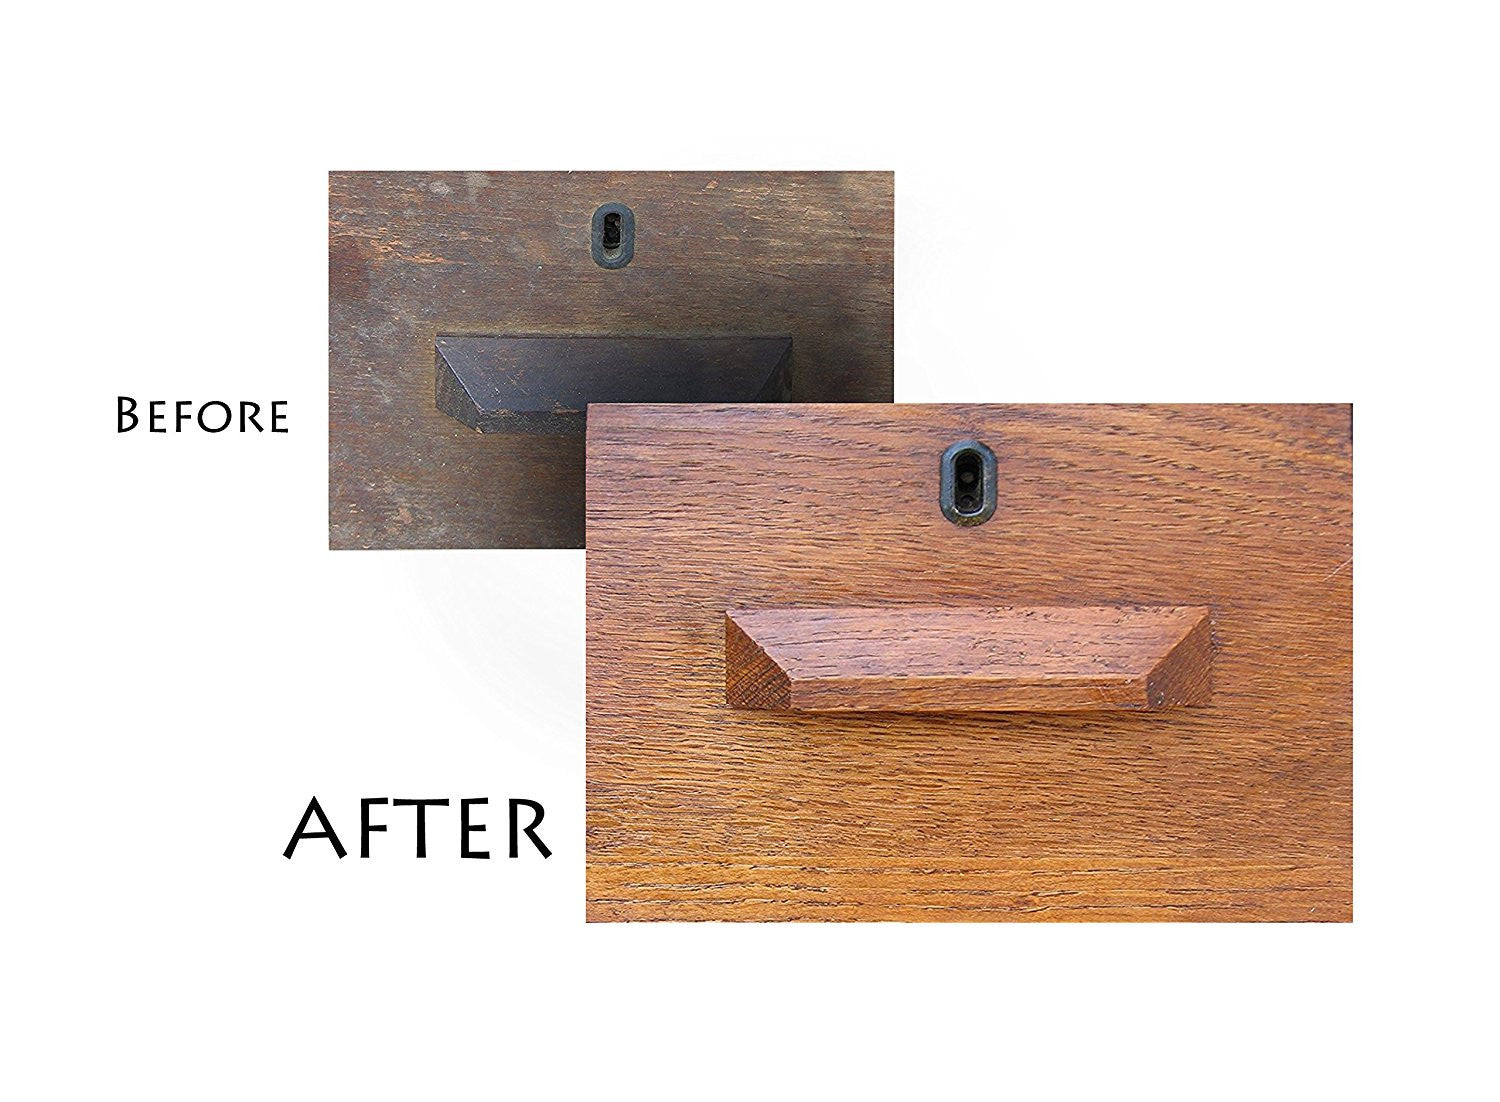 furniture restoration projects. The Best Orange Wood Cleaner Furniture Restoration Projects